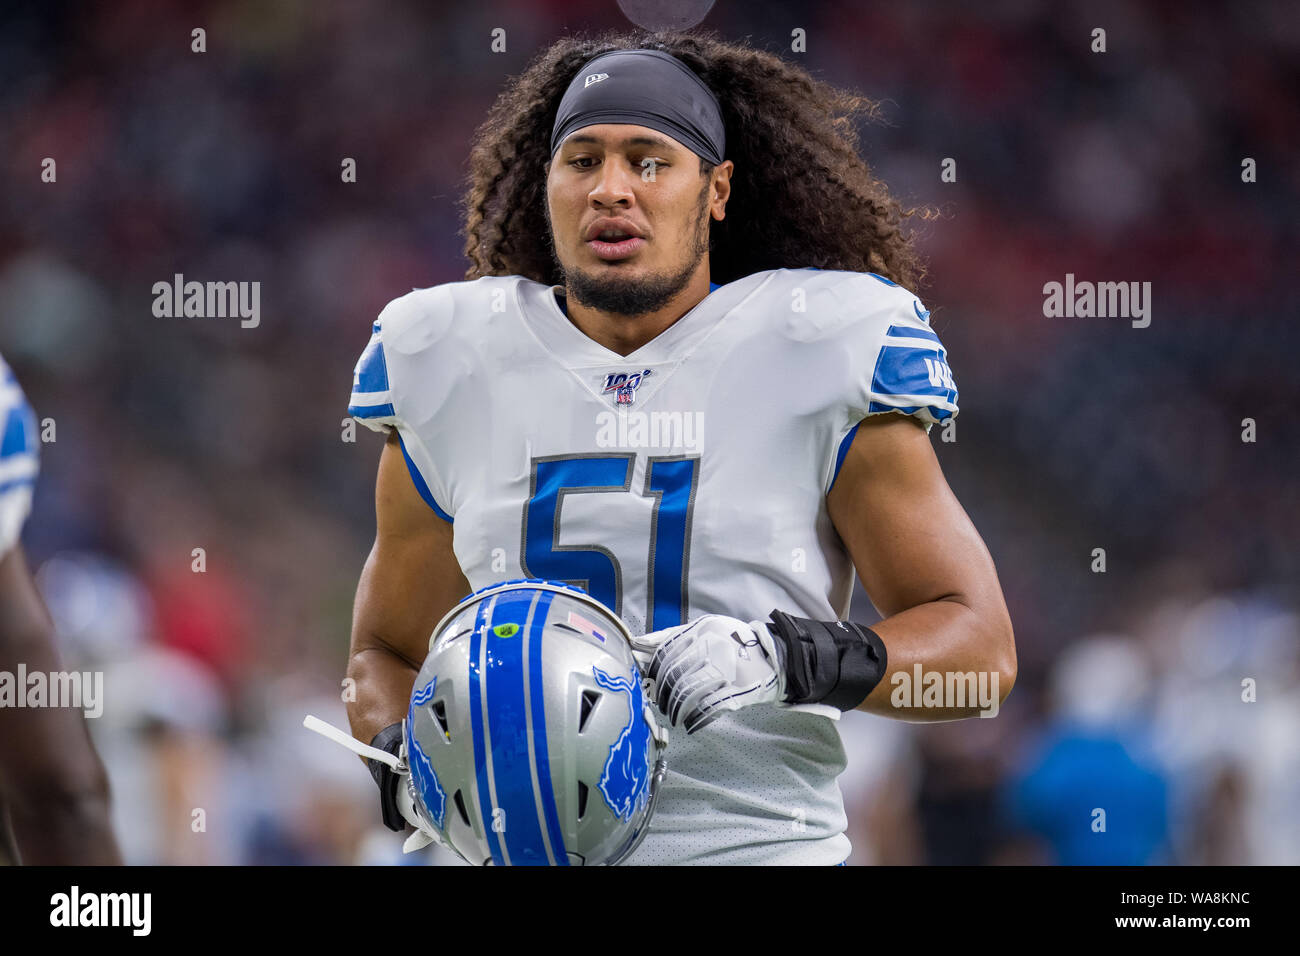 finest selection 89df7 64c2e August 17, 2019: Detroit Lions linebacker Jahlani Tavai (51 ...